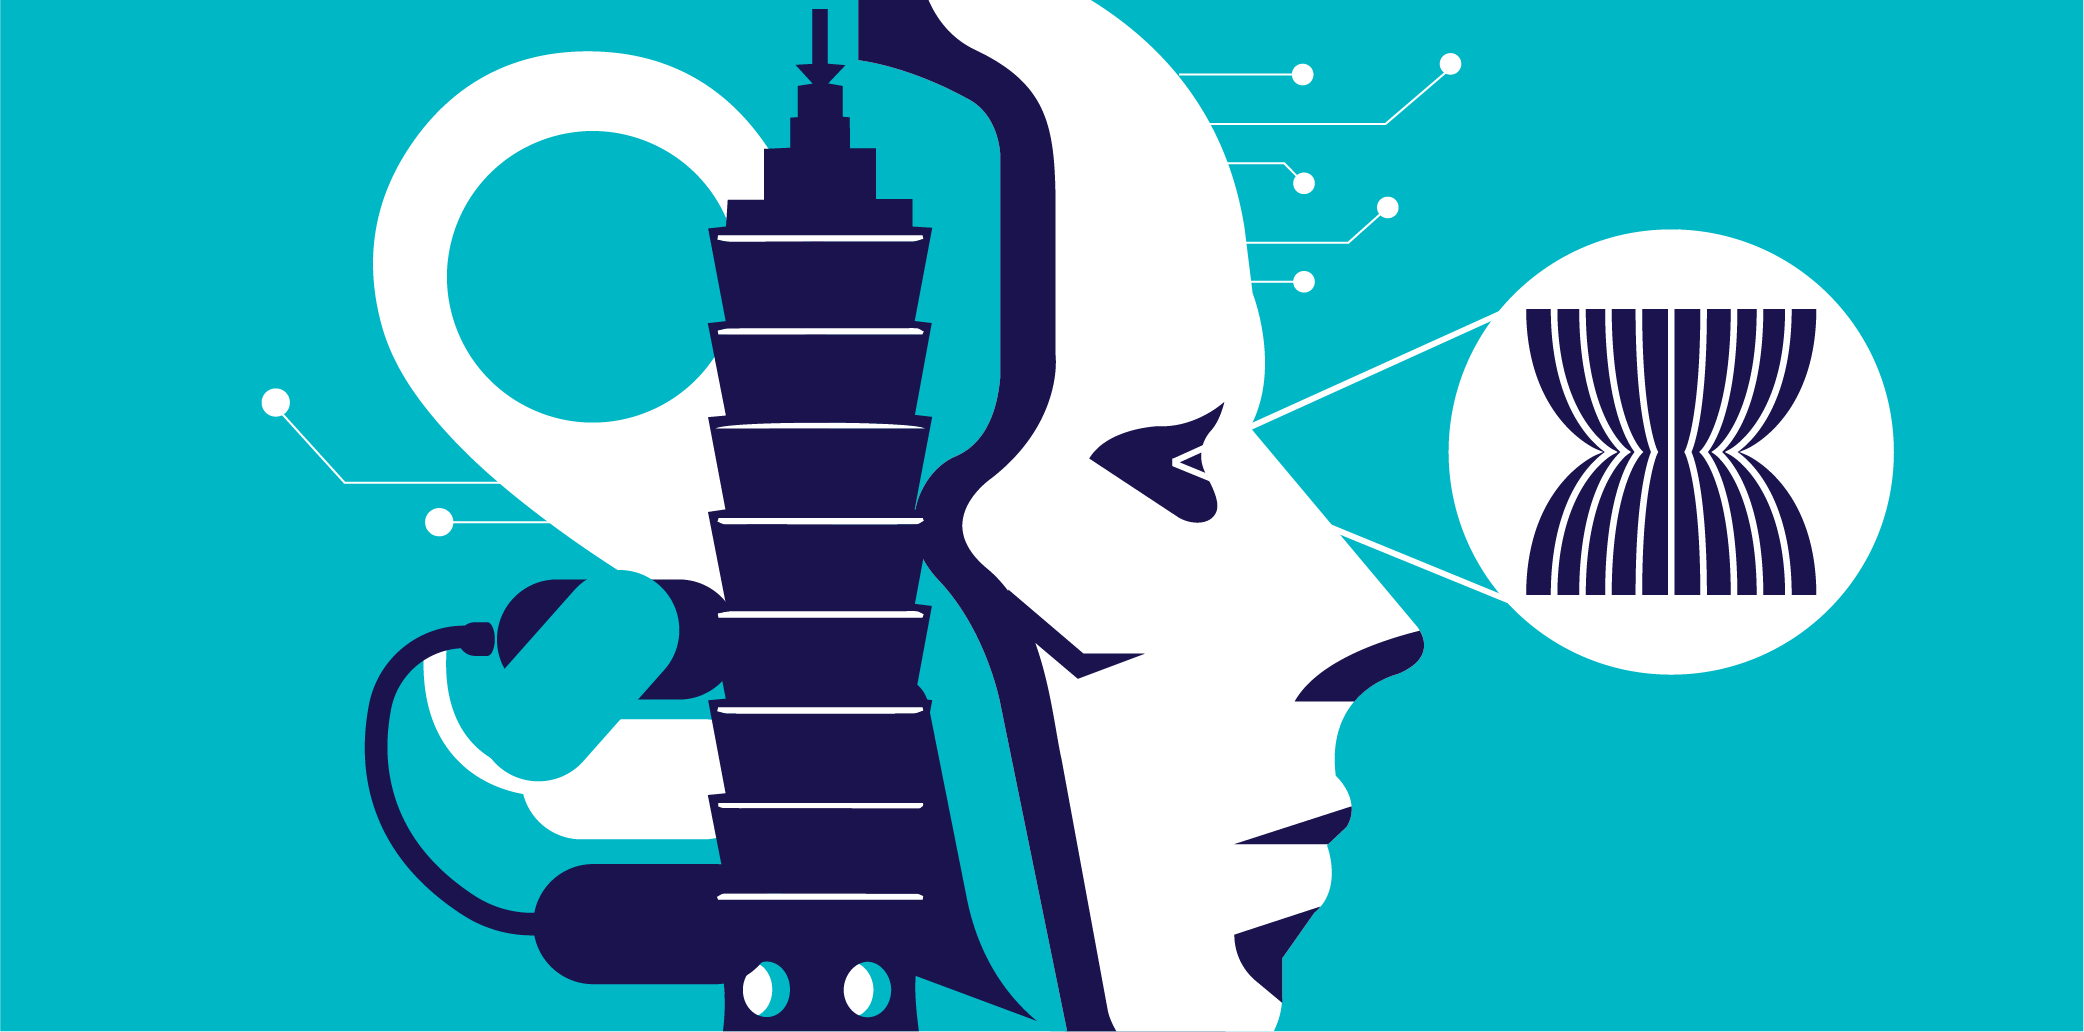 Taiwan sets sights to become AI hub, with Southeast Asia as primary market's picture